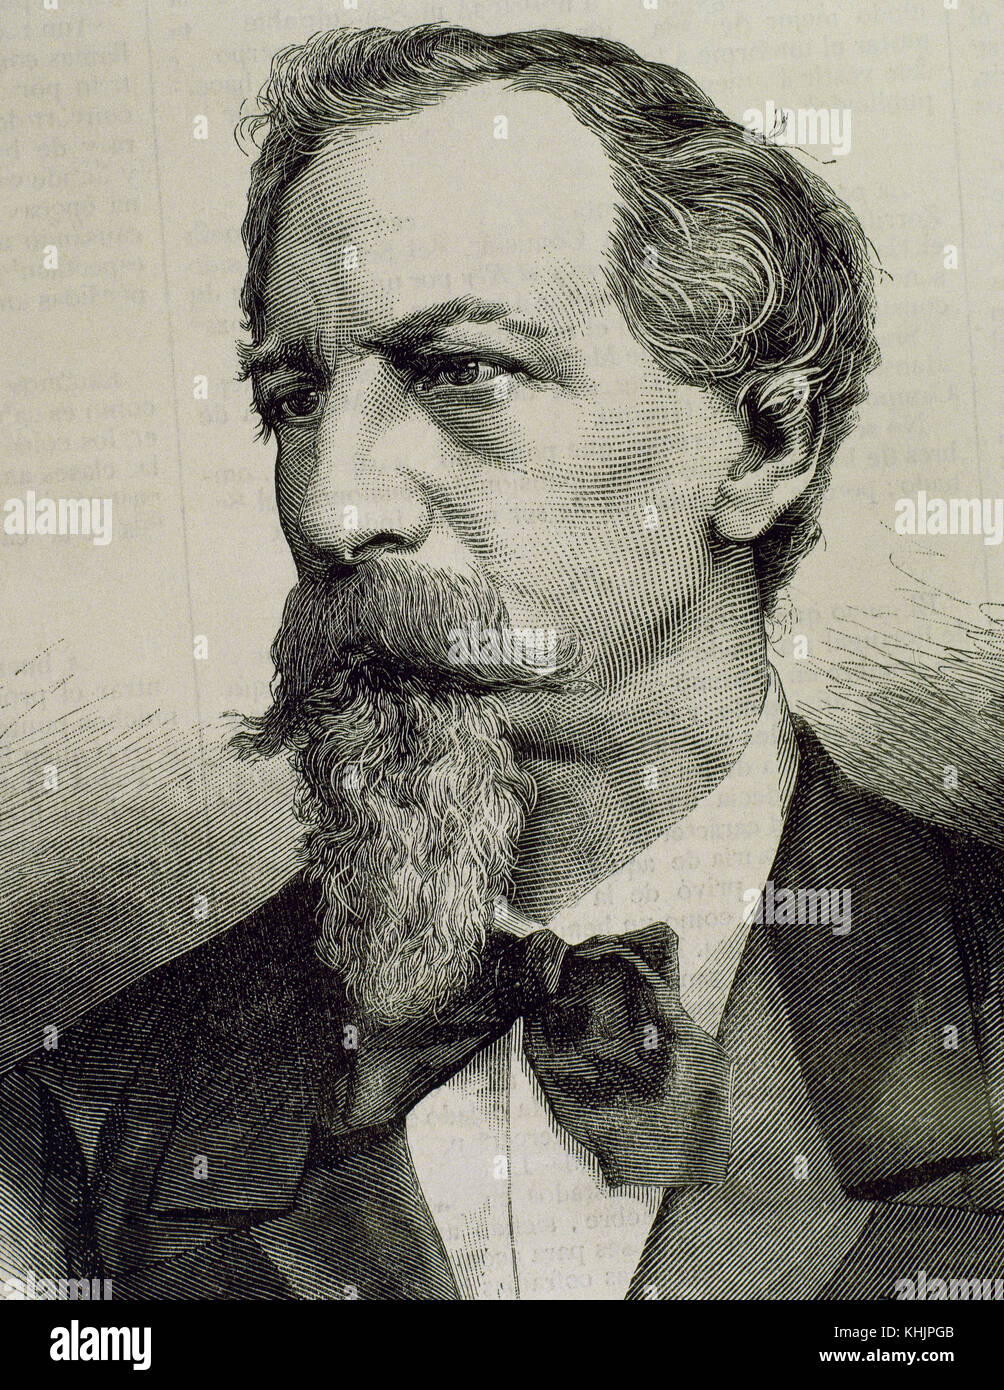 Ferdinand II of Portugal (1816-1885). German prince of the House of Saxe-Coburg and Gotha-Kohary, and King of Portugal - Stock Image